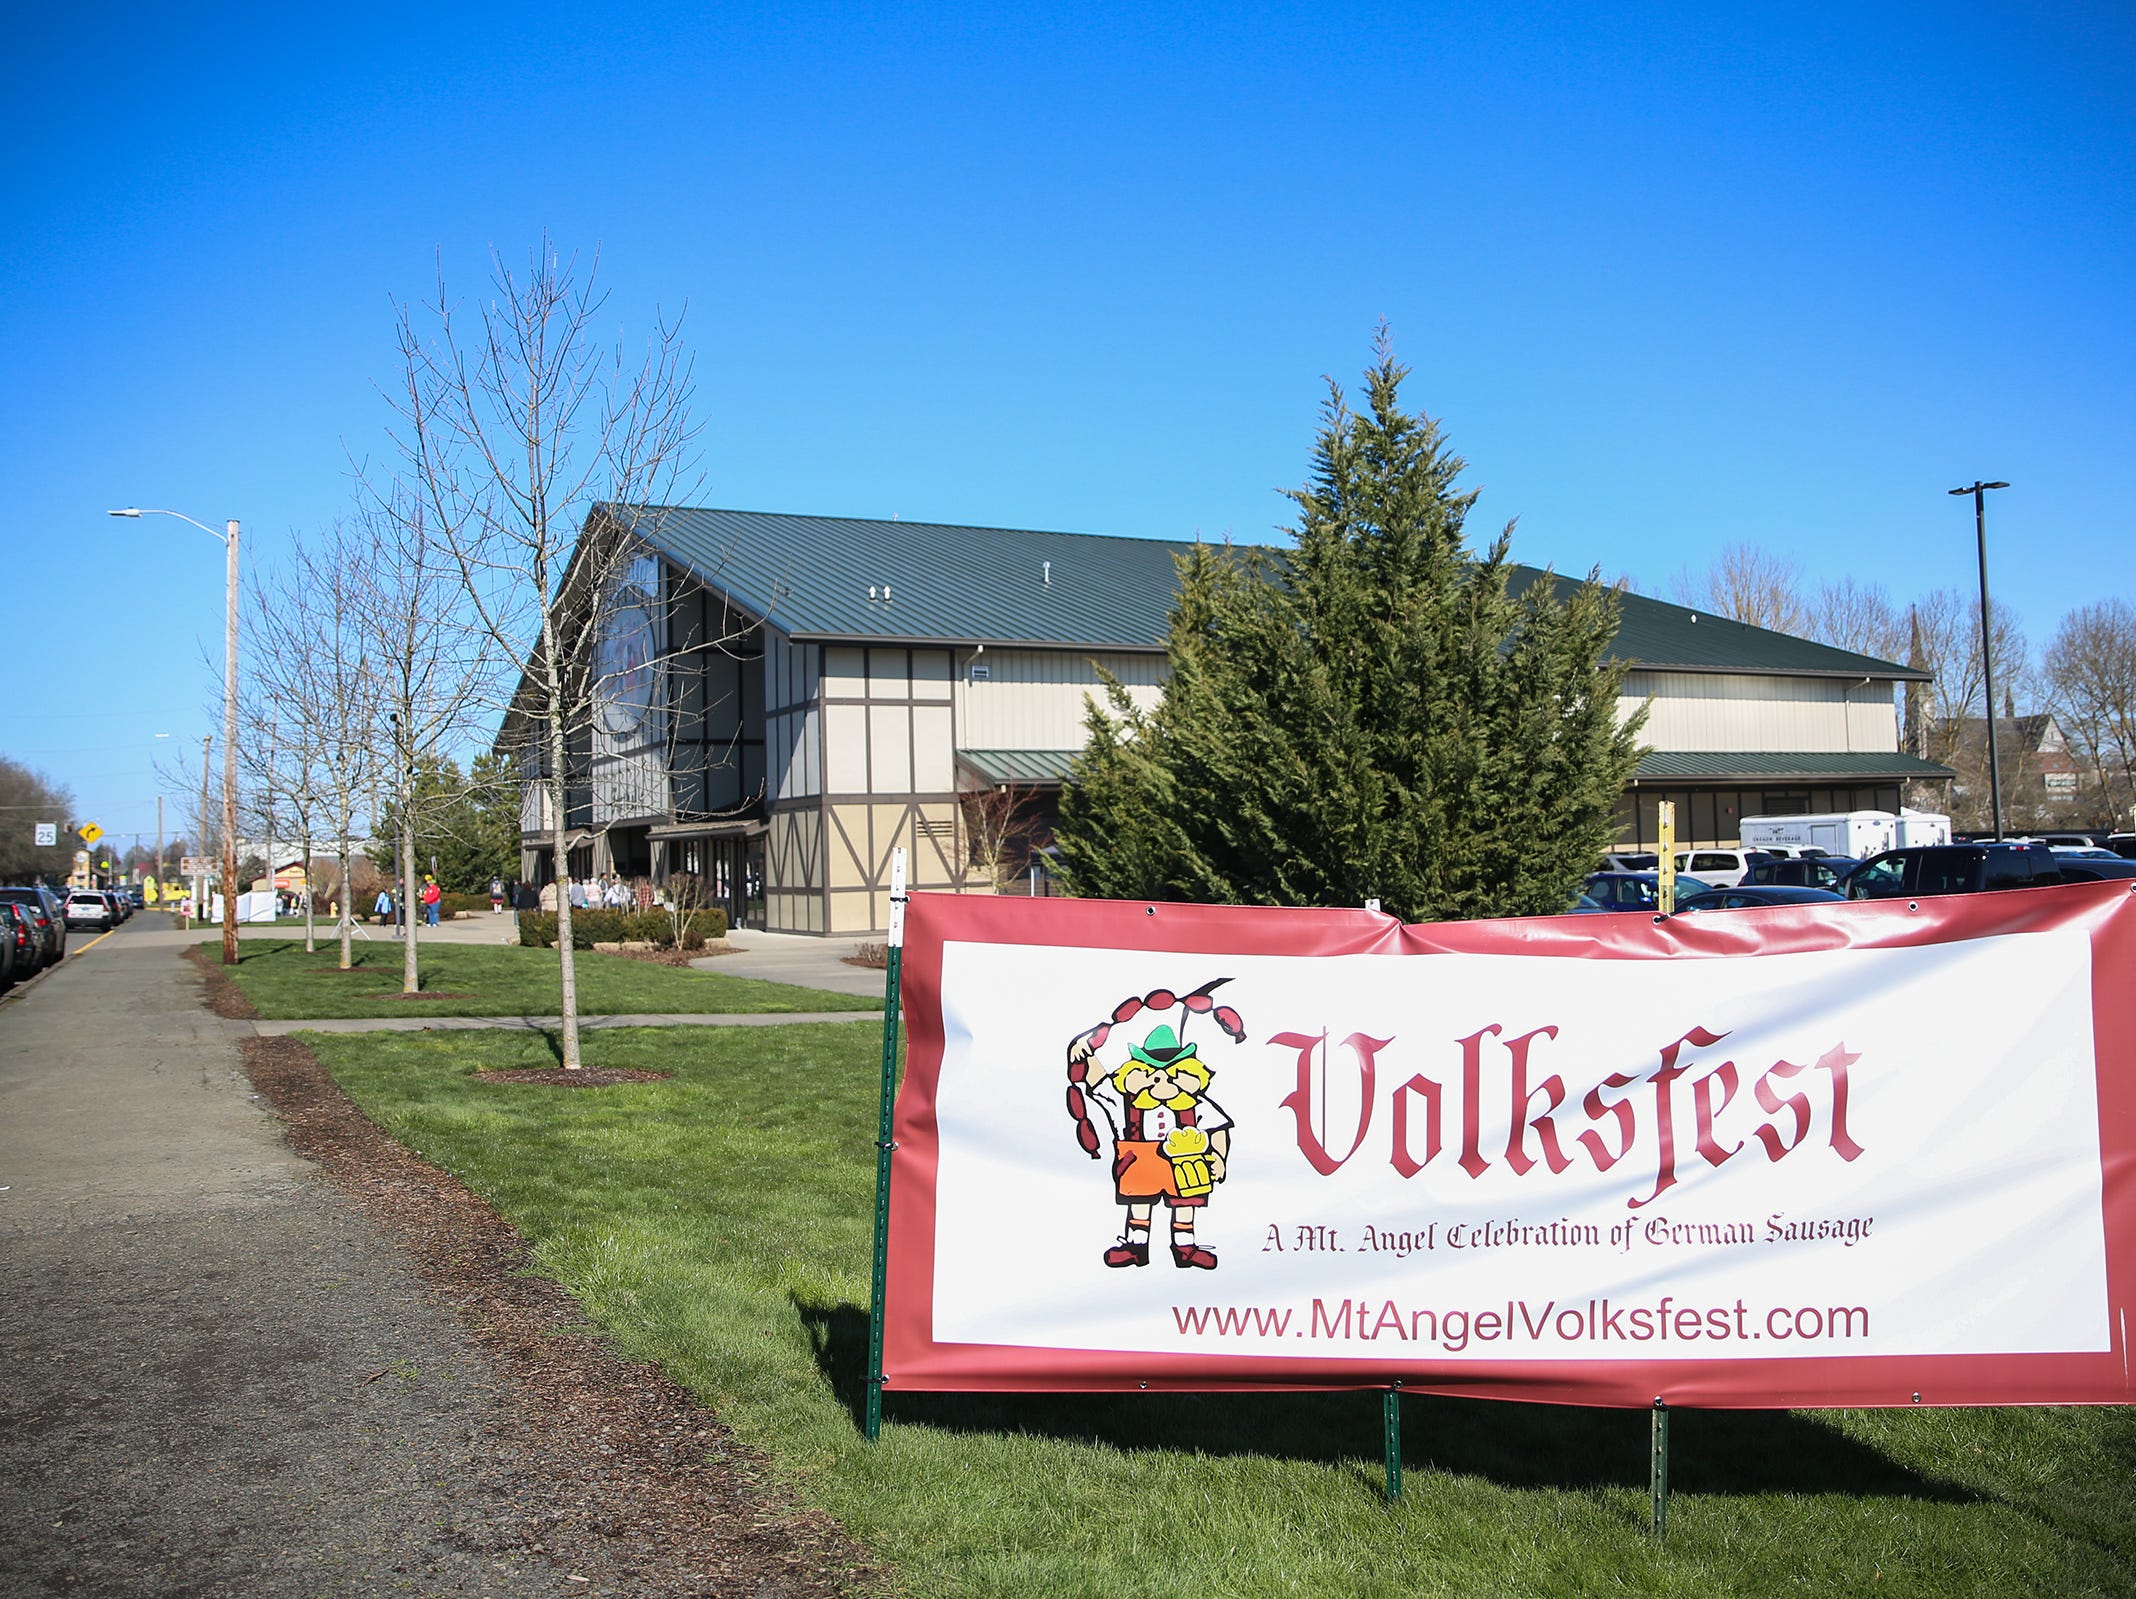 Volksfest, formerly called Wurstfest, is celebrated with food, live German music, dancing, games and demonstrations at the annual Volksfest in Mt. Angel on Saturday, March 2, 2019.